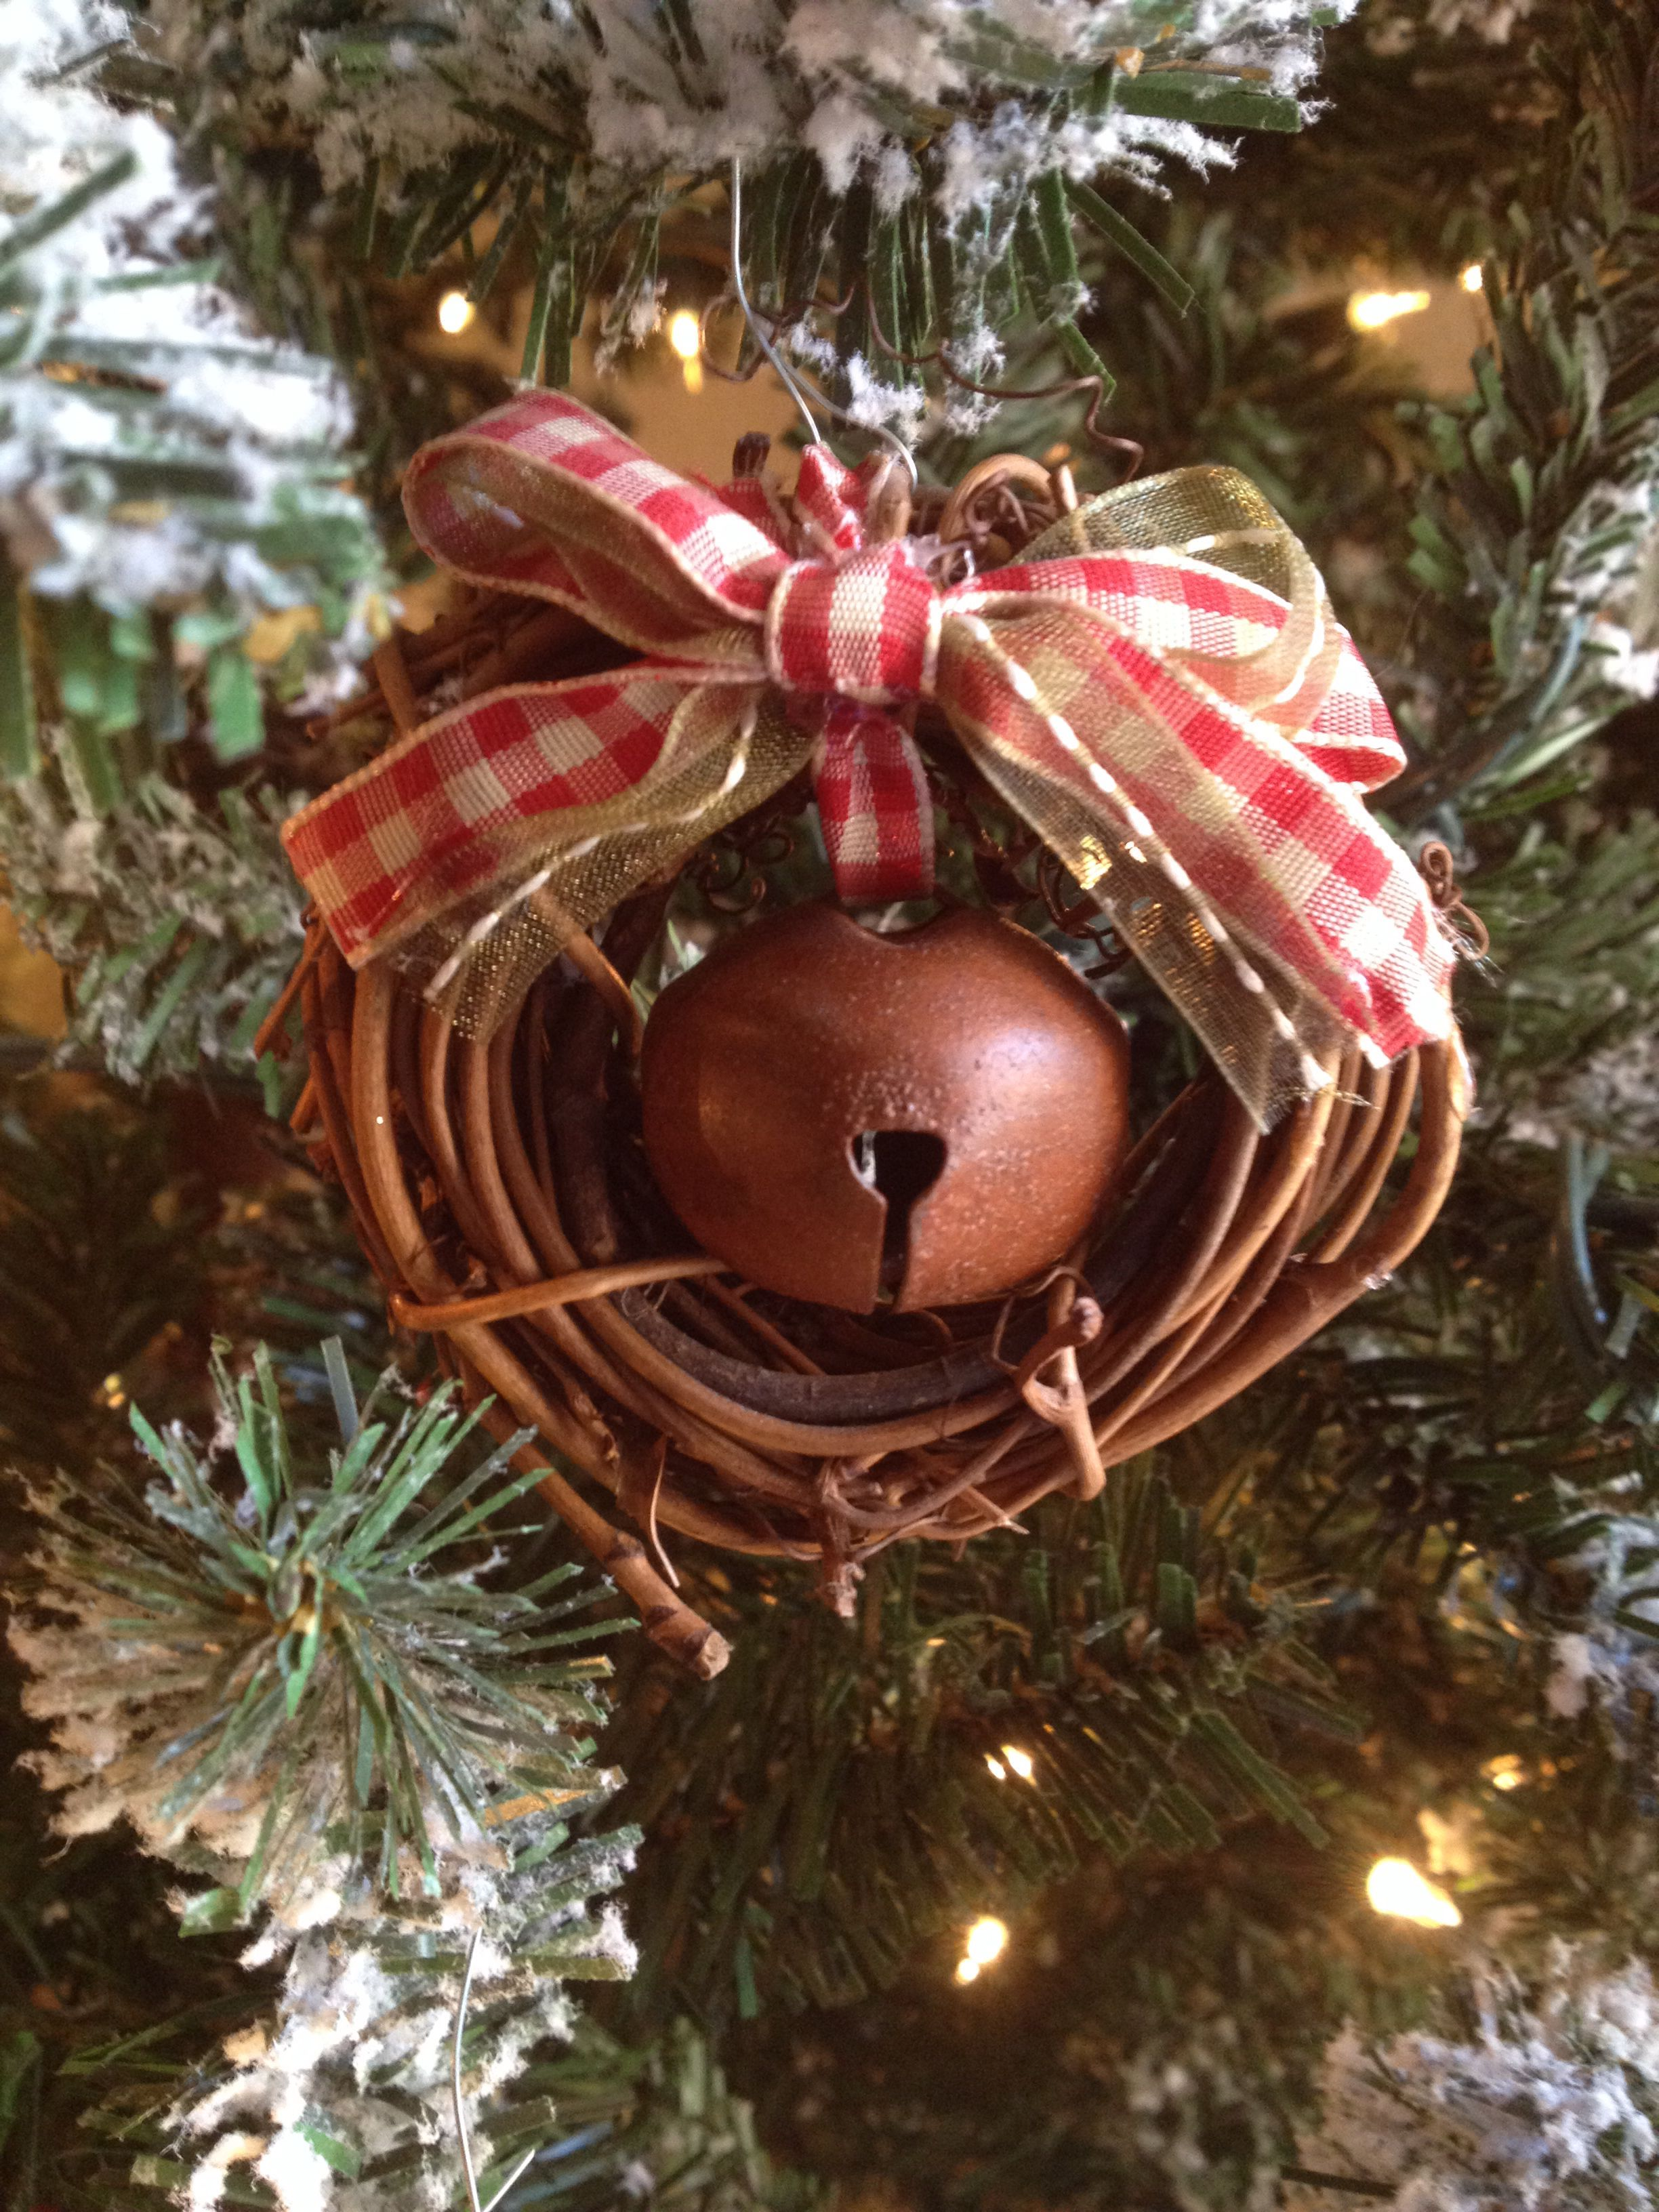 Dollar tree small grapevine wreaths tie a rustic bell to dangle in